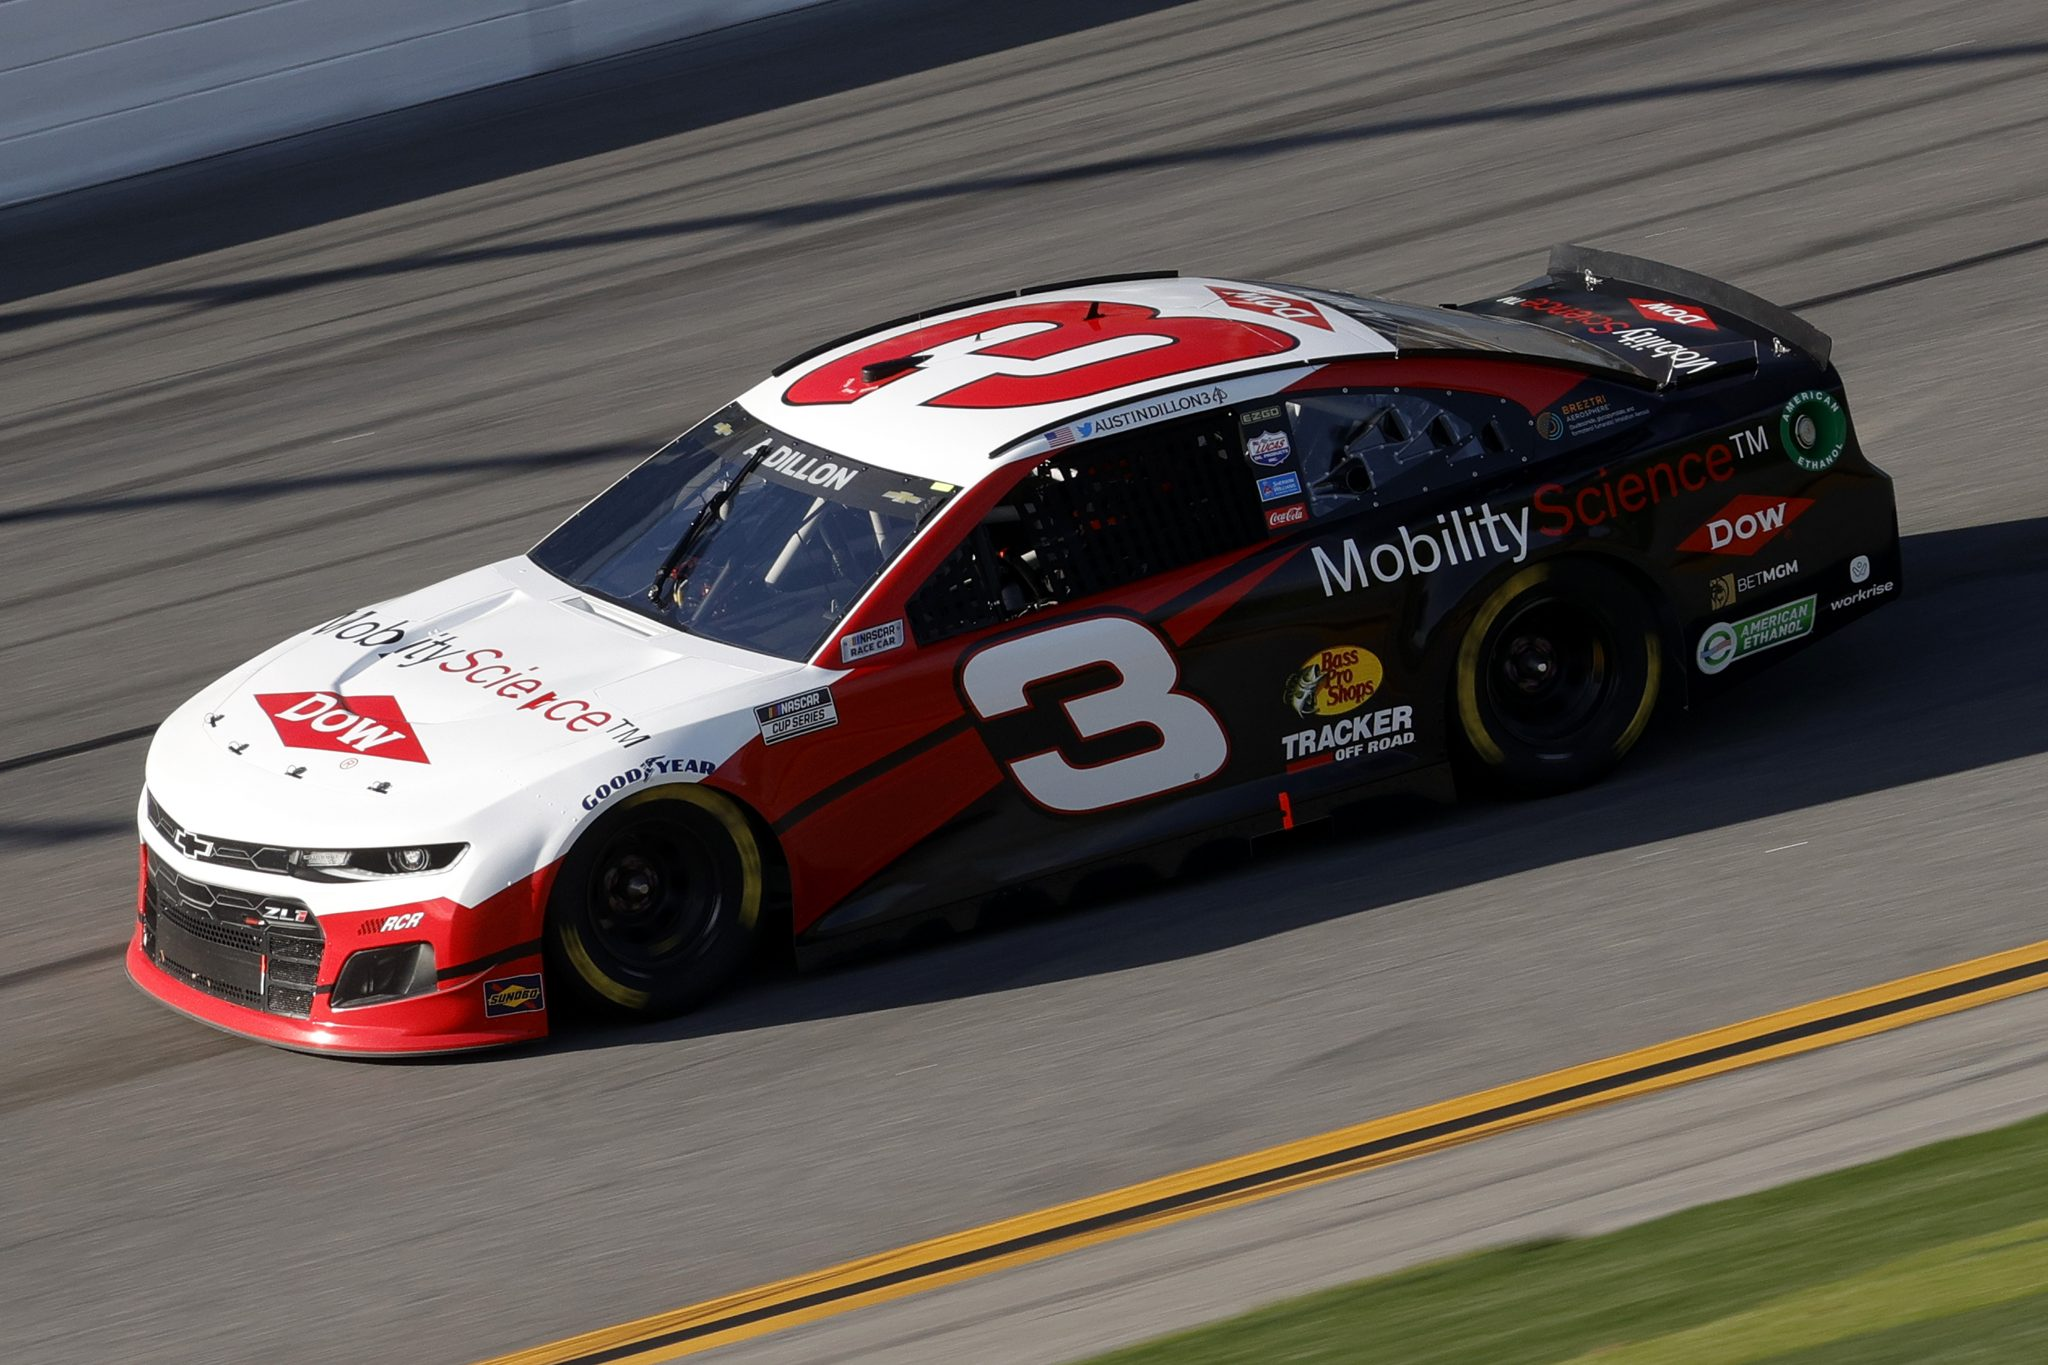 DAYTONA BEACH, FLORIDA - FEBRUARY 21: Austin Dillon, driver of the #3 Chevrolet, drives during the NASCAR Cup Series O'Reilly Auto Parts 253 at Daytona International Speedway on February 21, 2021 in Daytona Beach, Florida. (Photo by Chris Graythen/Getty Images) | Getty Images